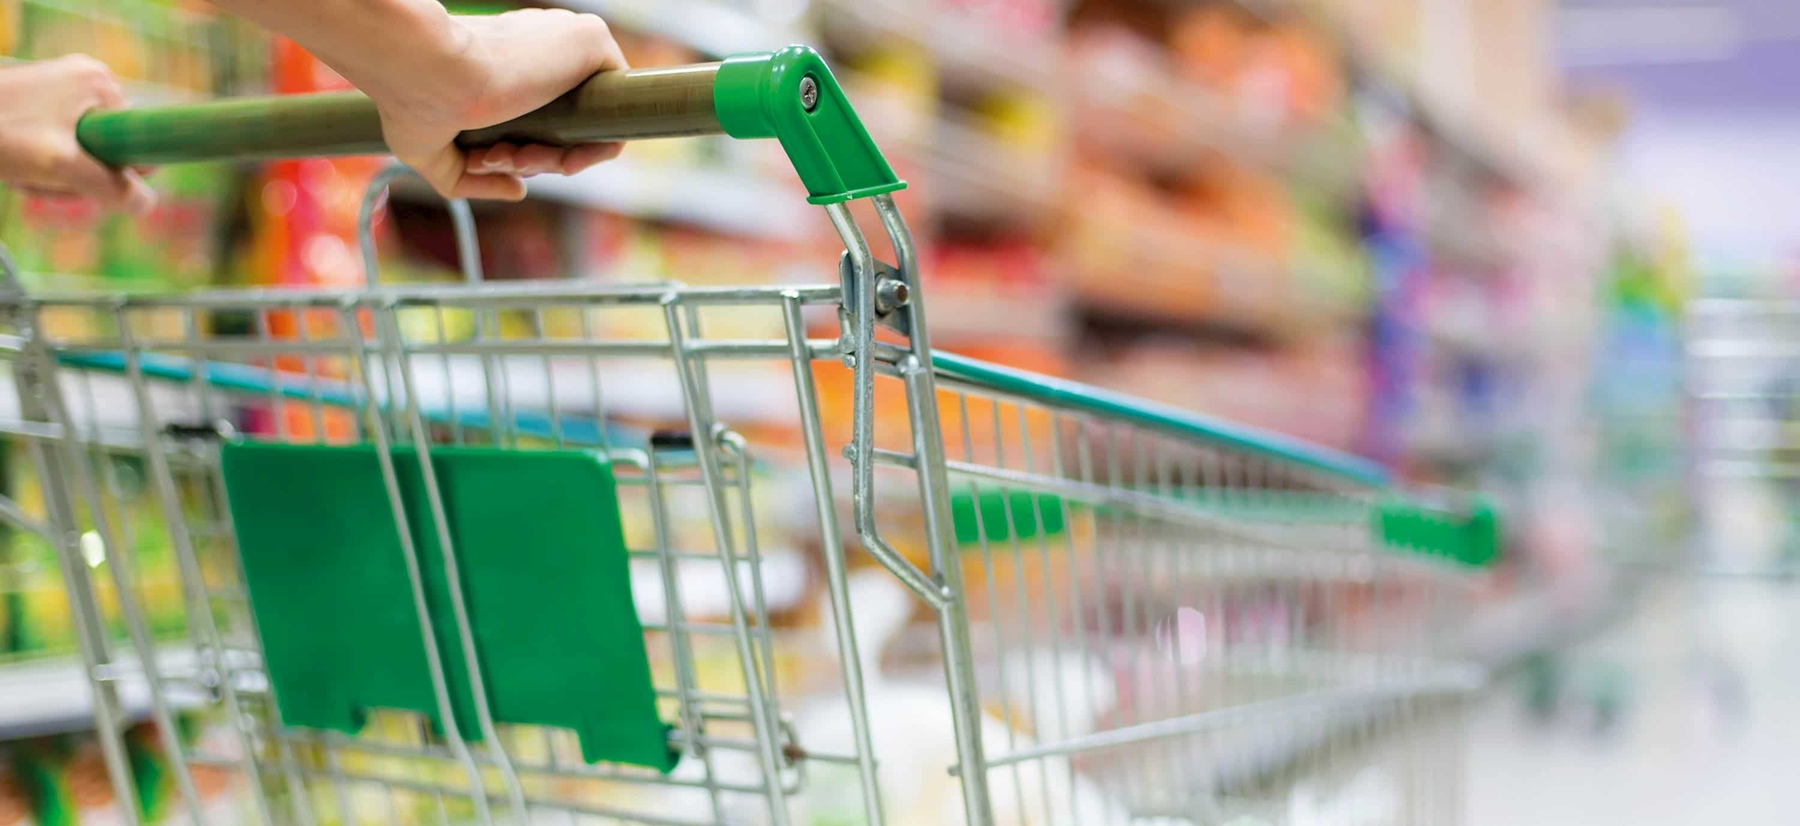 Image of shopping trolleys in the supermarket as a symbol for Food & Beverages